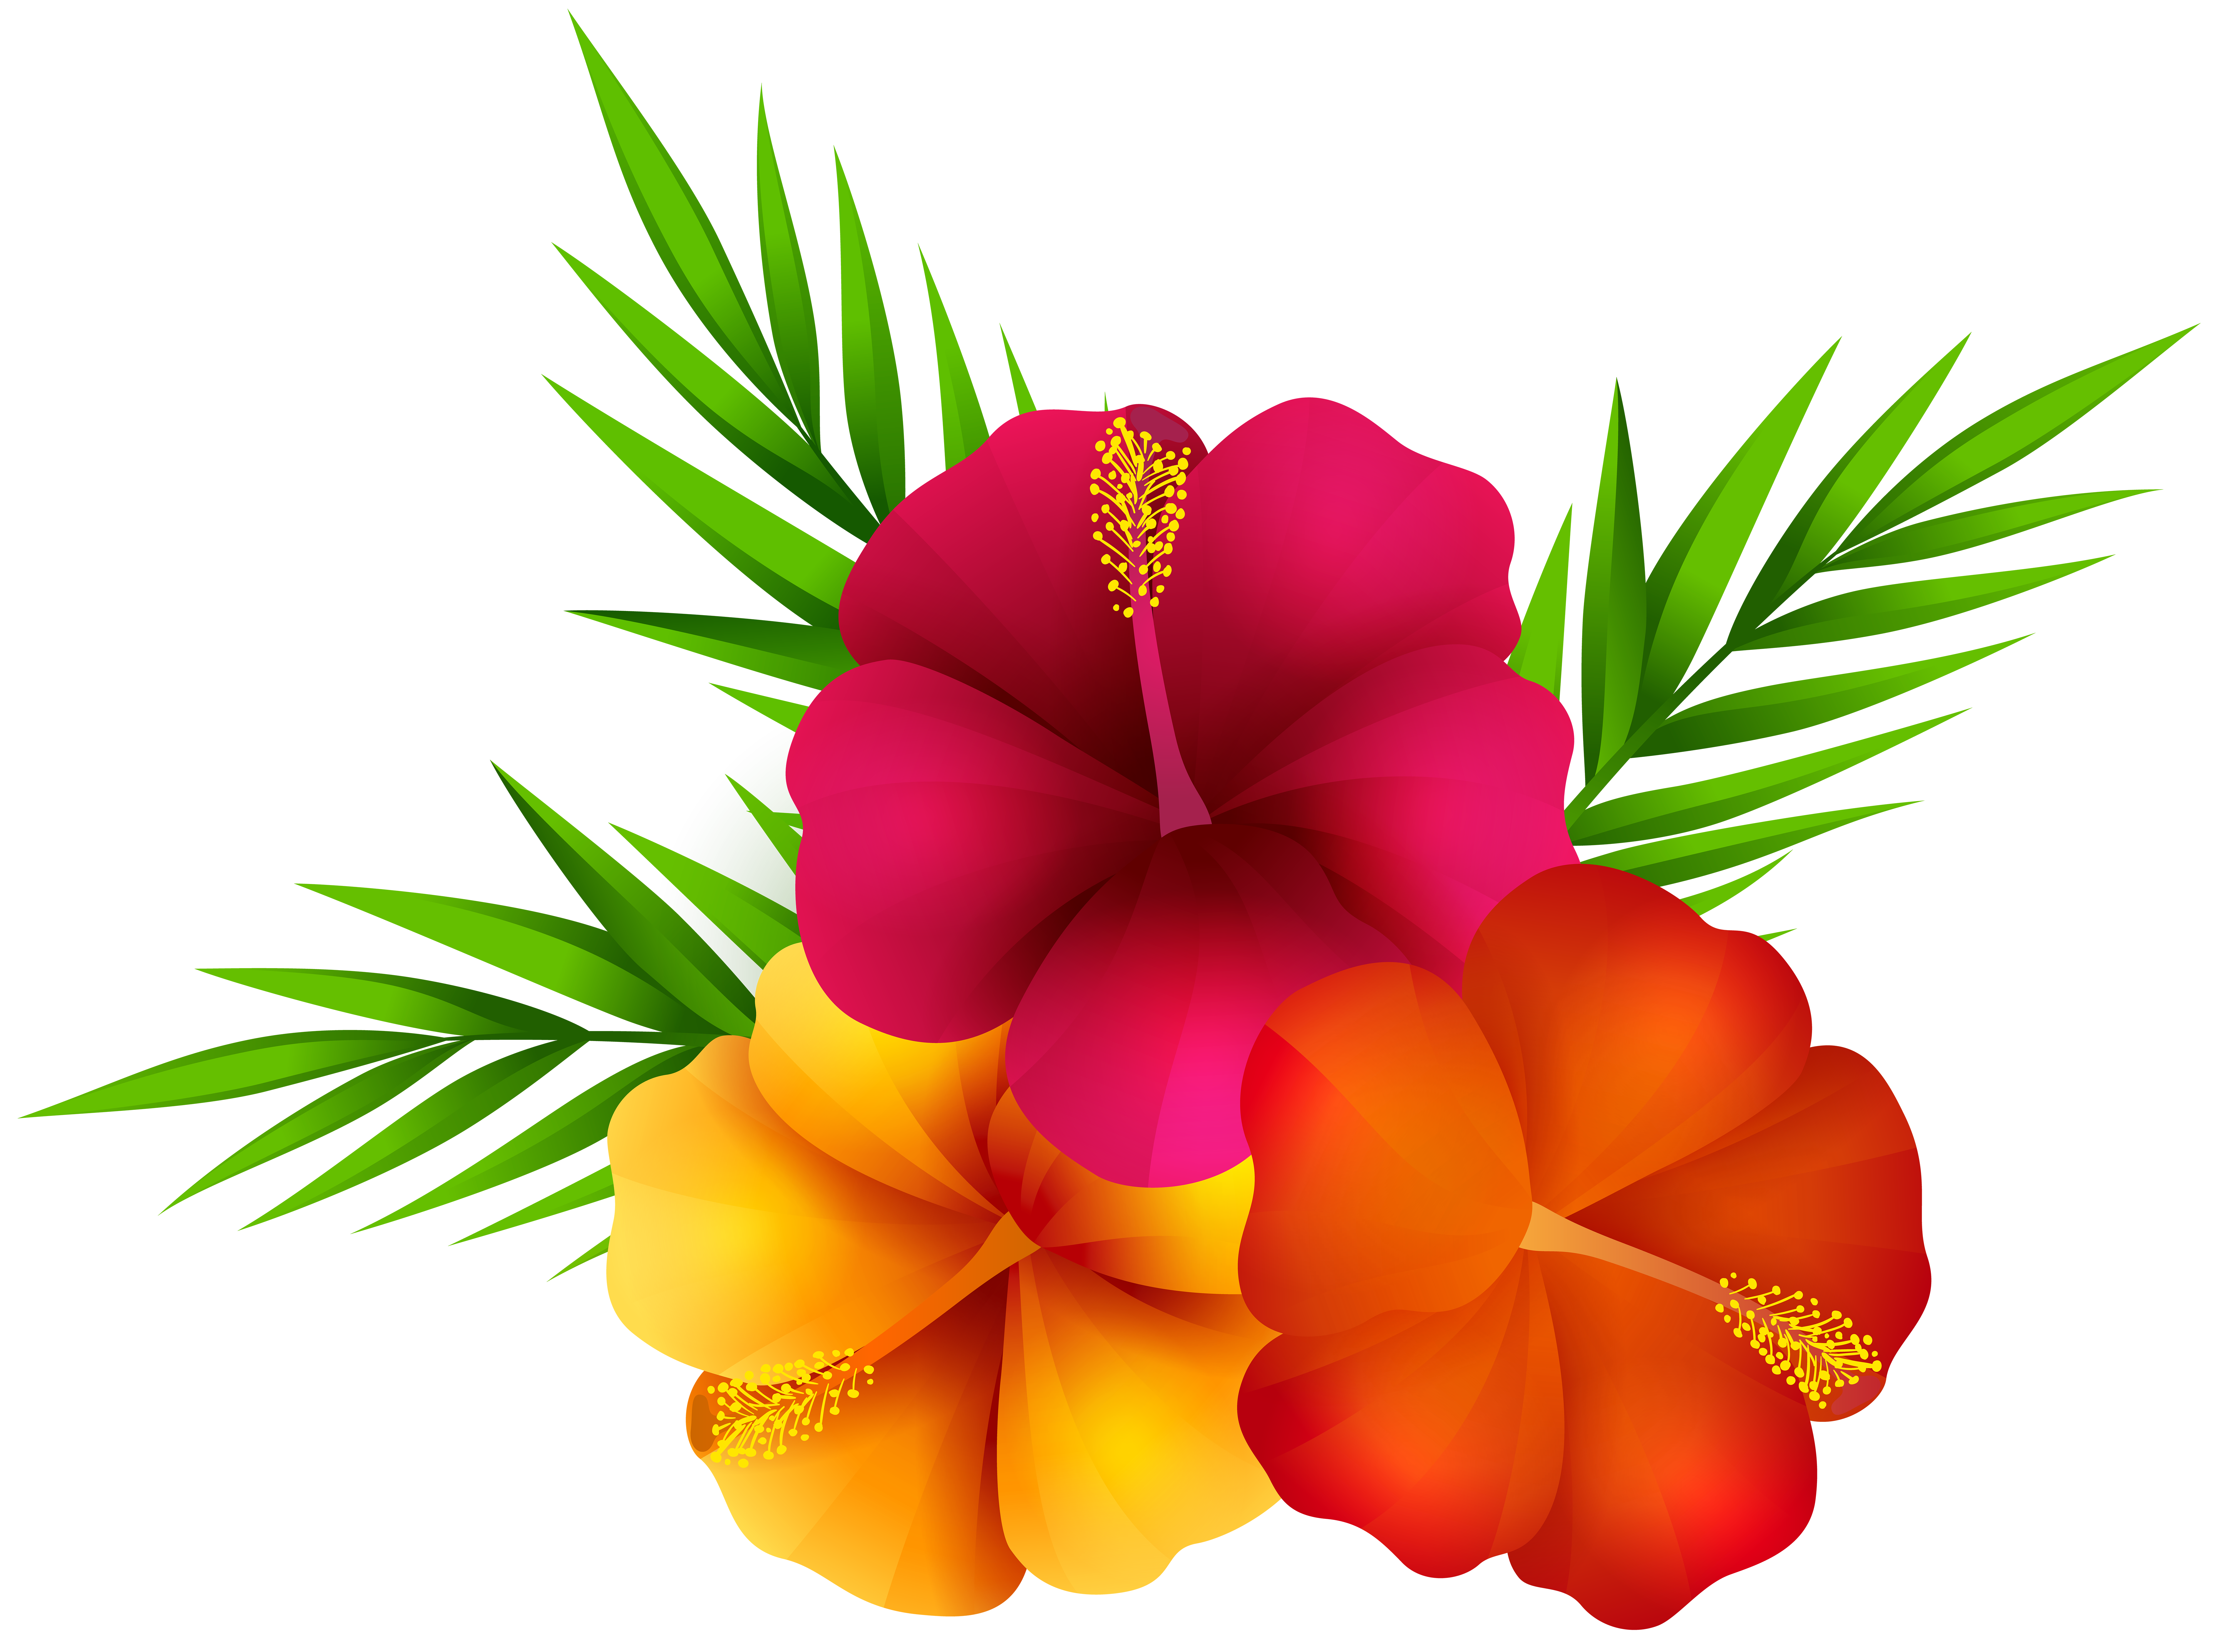 Exotic clip art image. Flowers png png royalty free